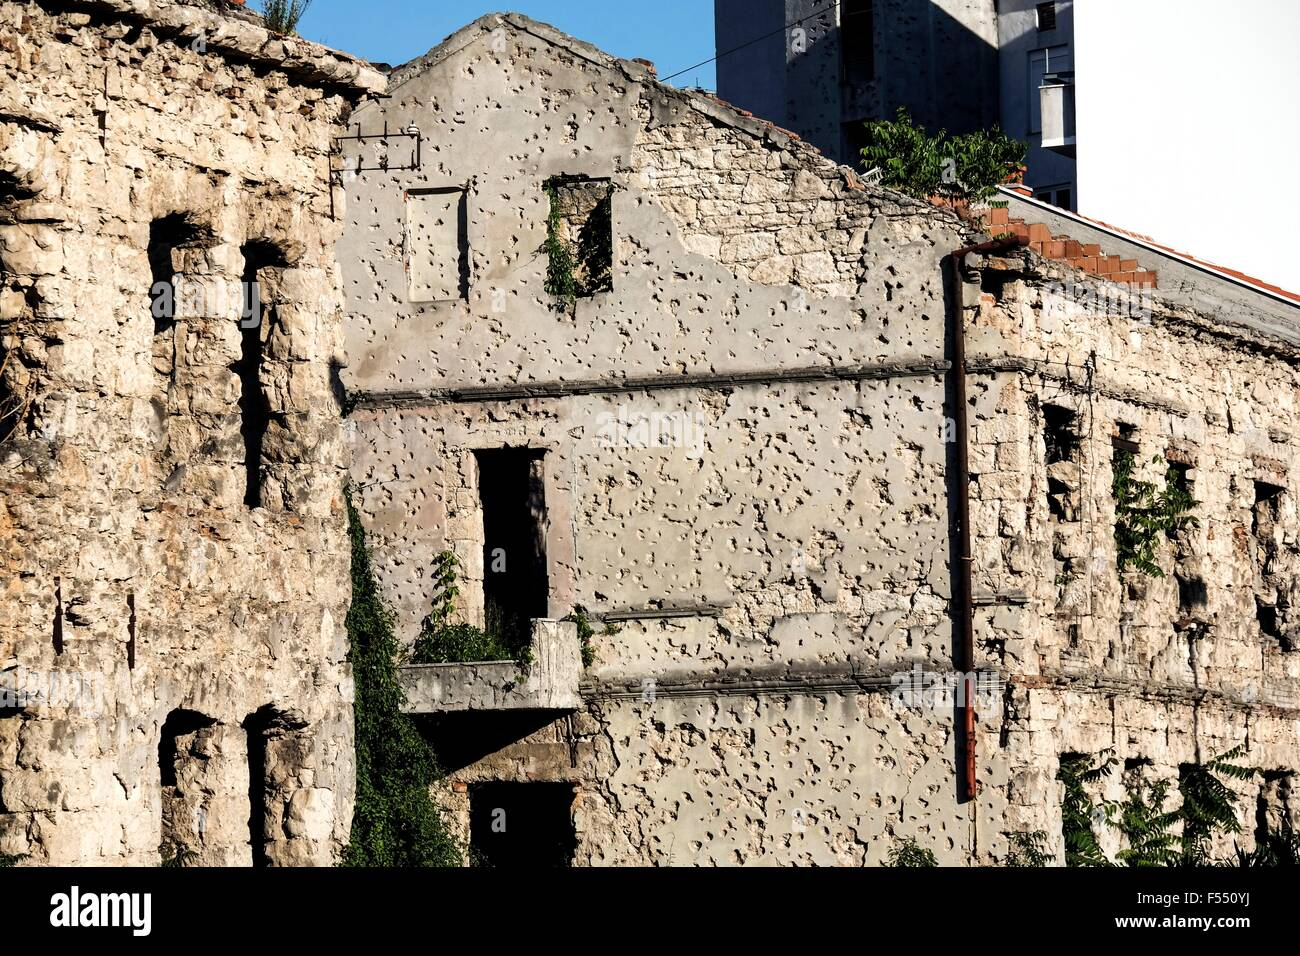 House dotted with bulletholes in Mostar. - Stock Image